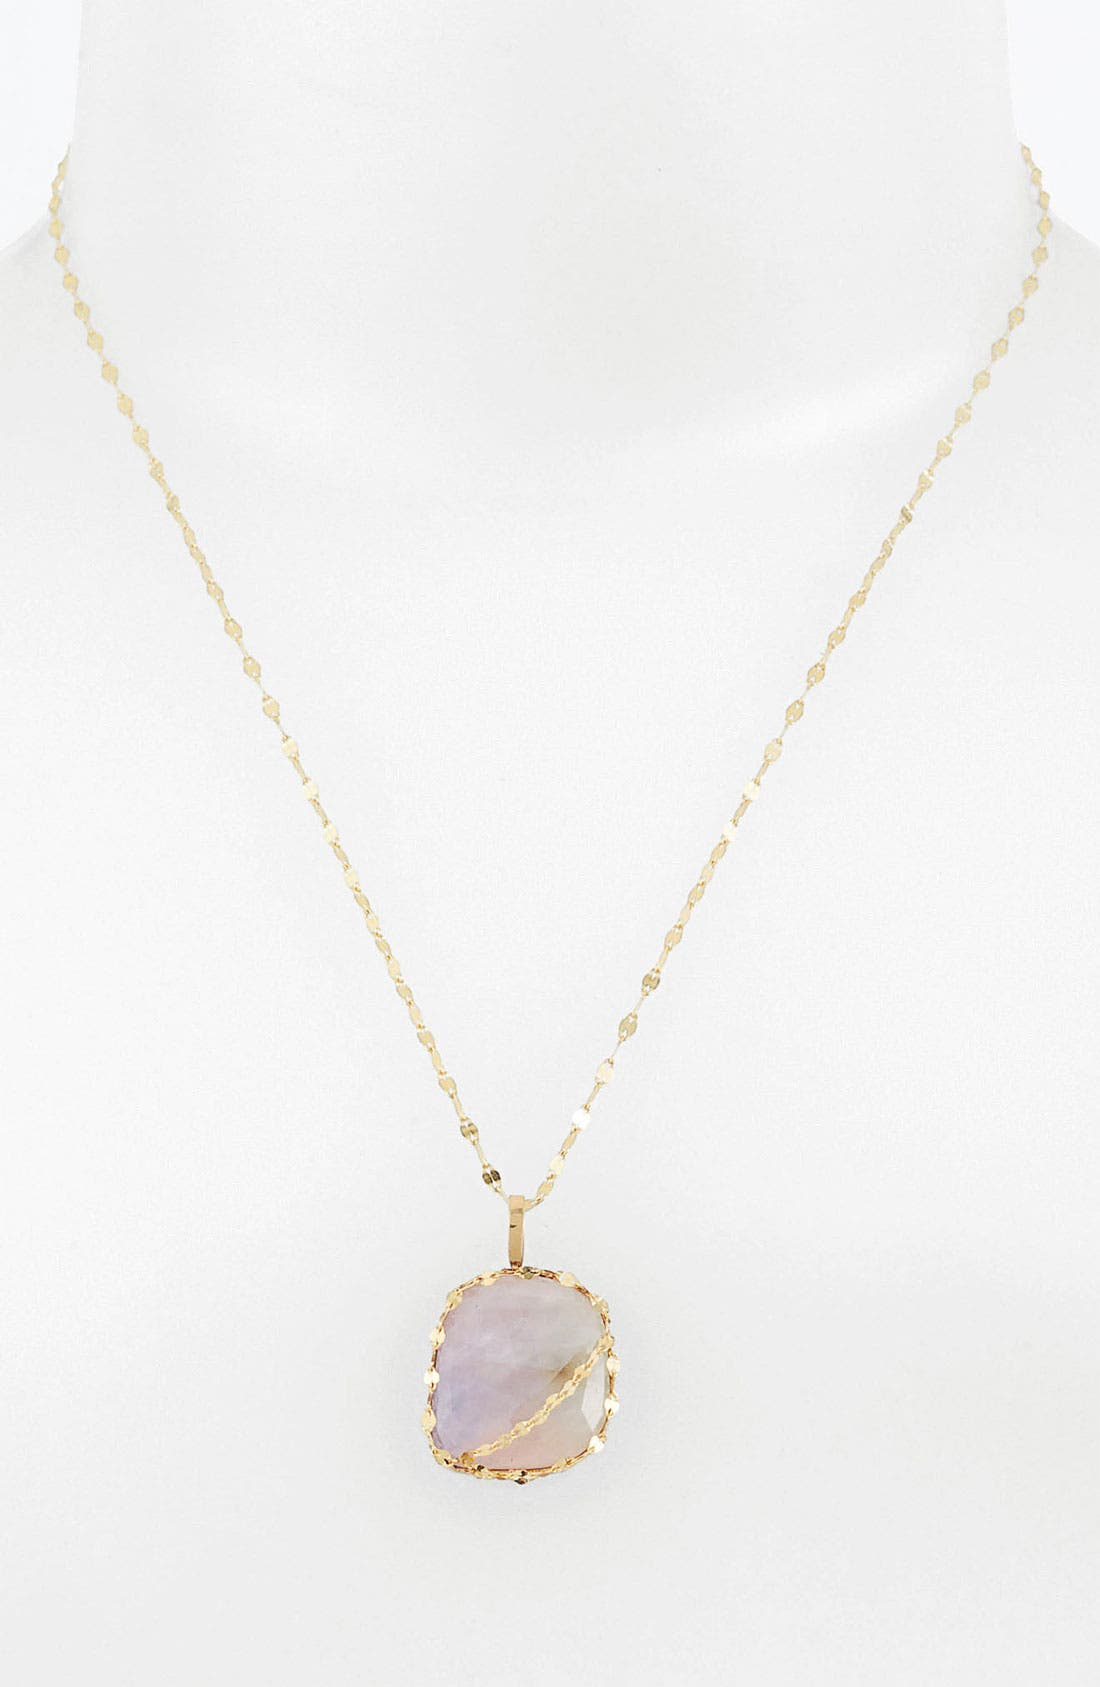 Alternate Image 1 Selected - Lana Jewelry 'Stone Gold - Paragon' Pendant Necklace